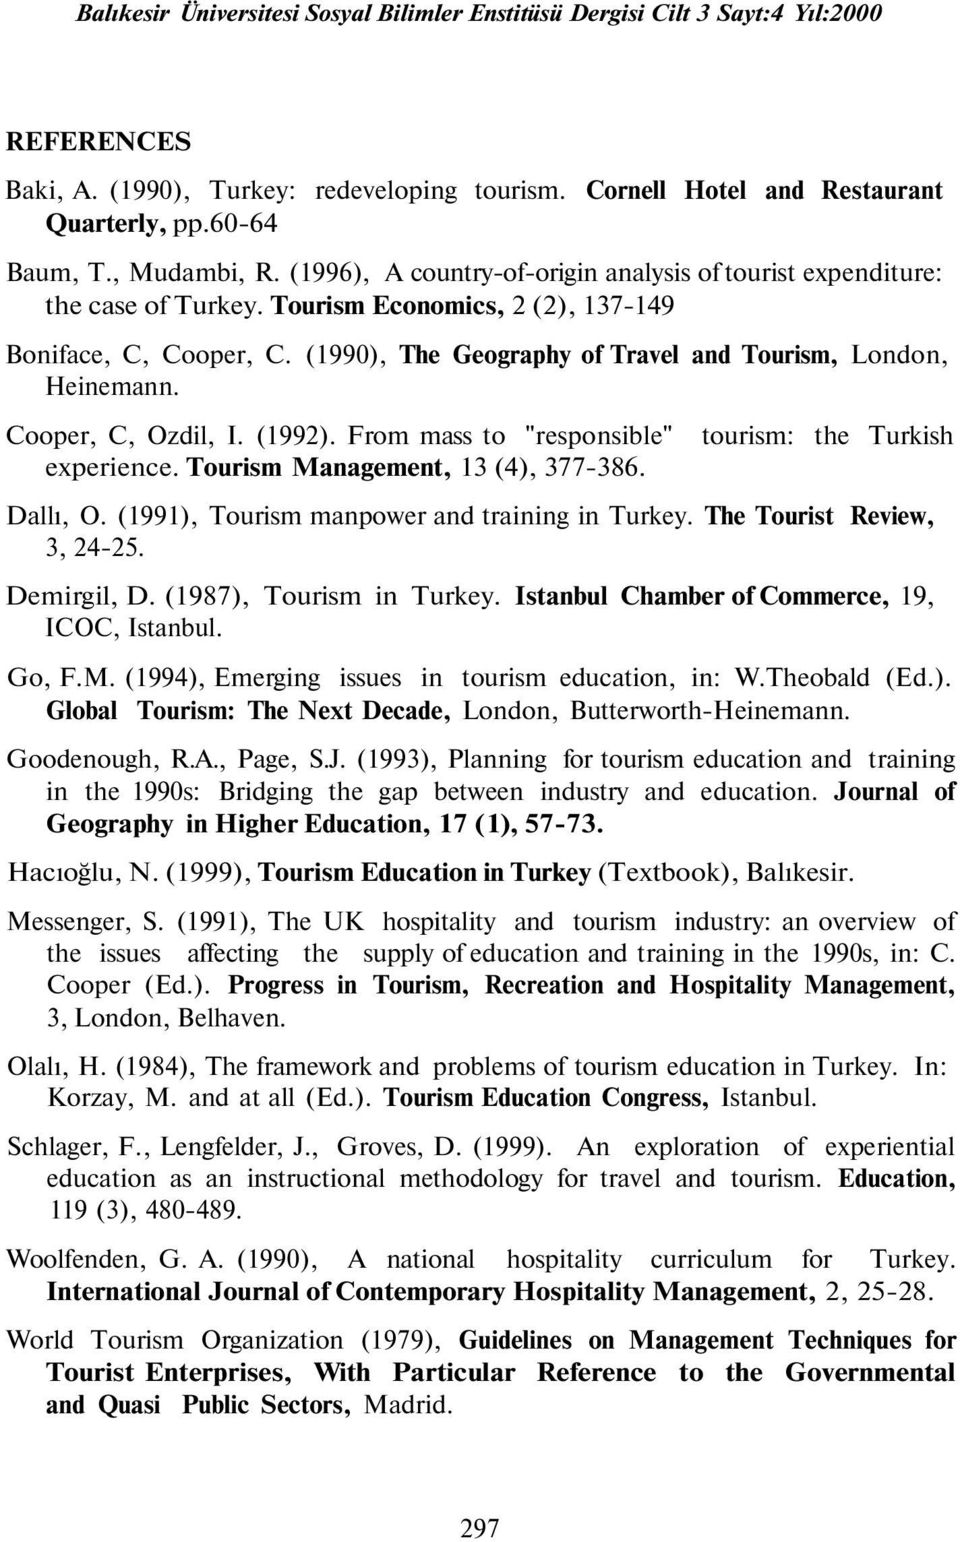 "(1990), The Geography of Travel and Tourism, London, Heinemann. Cooper, C, Ozdil, I. (1992). From mass to ""responsible"" experience. Tourism Management, 13 (4), 377-386. tourism: the Turkish Dallı, O."